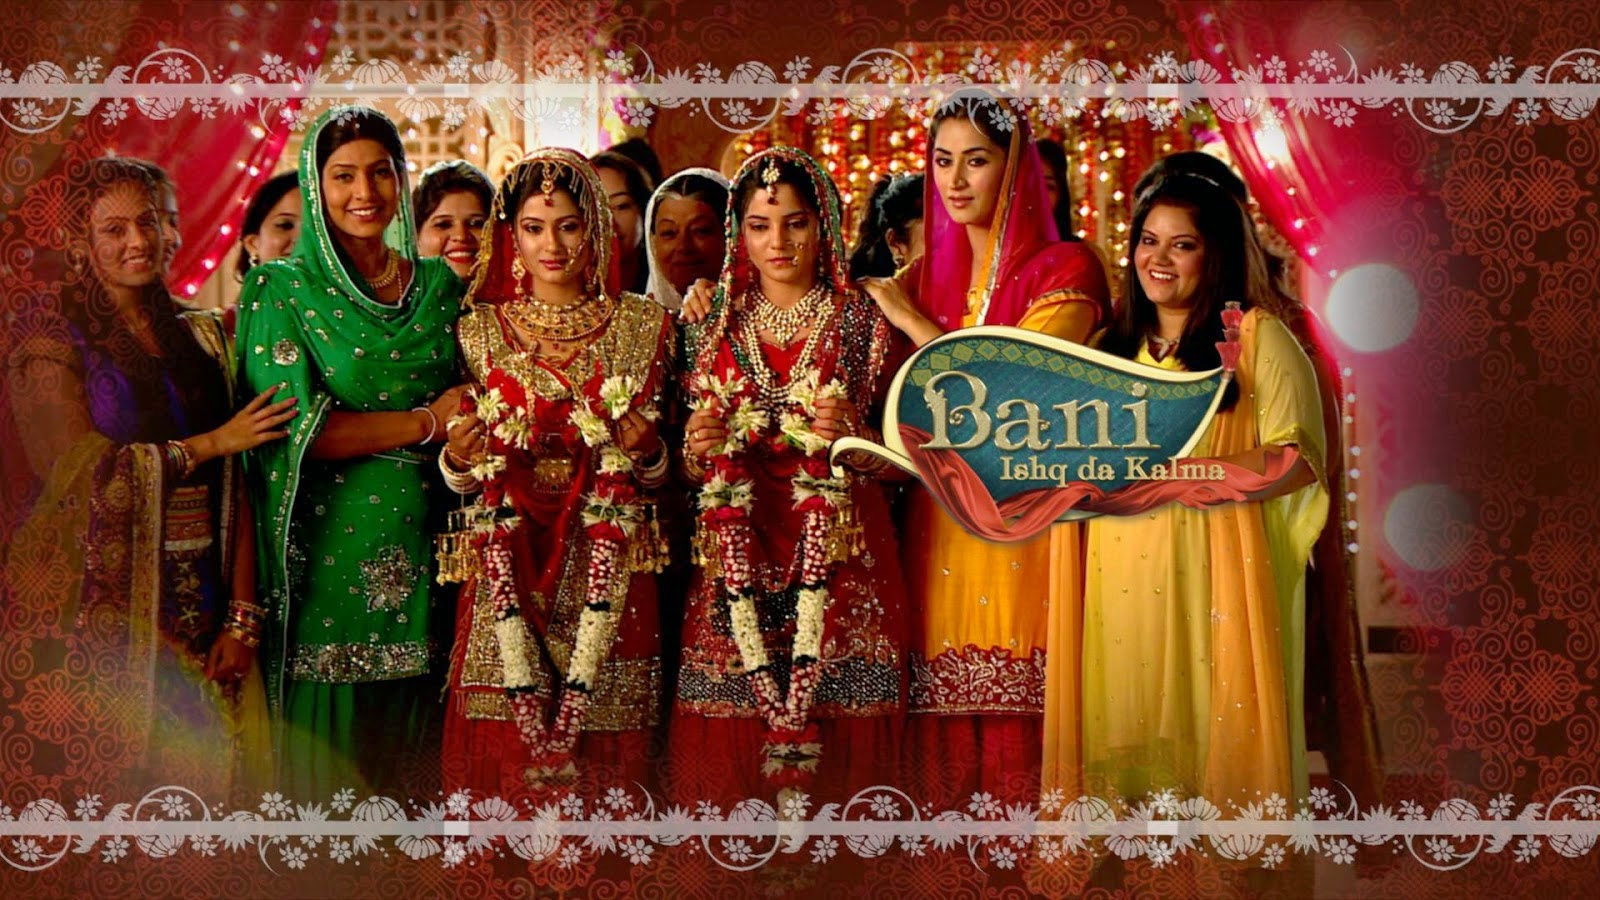 Bani Ishq Da Kalma 22nd May 2014 Episode Online Dailymotion